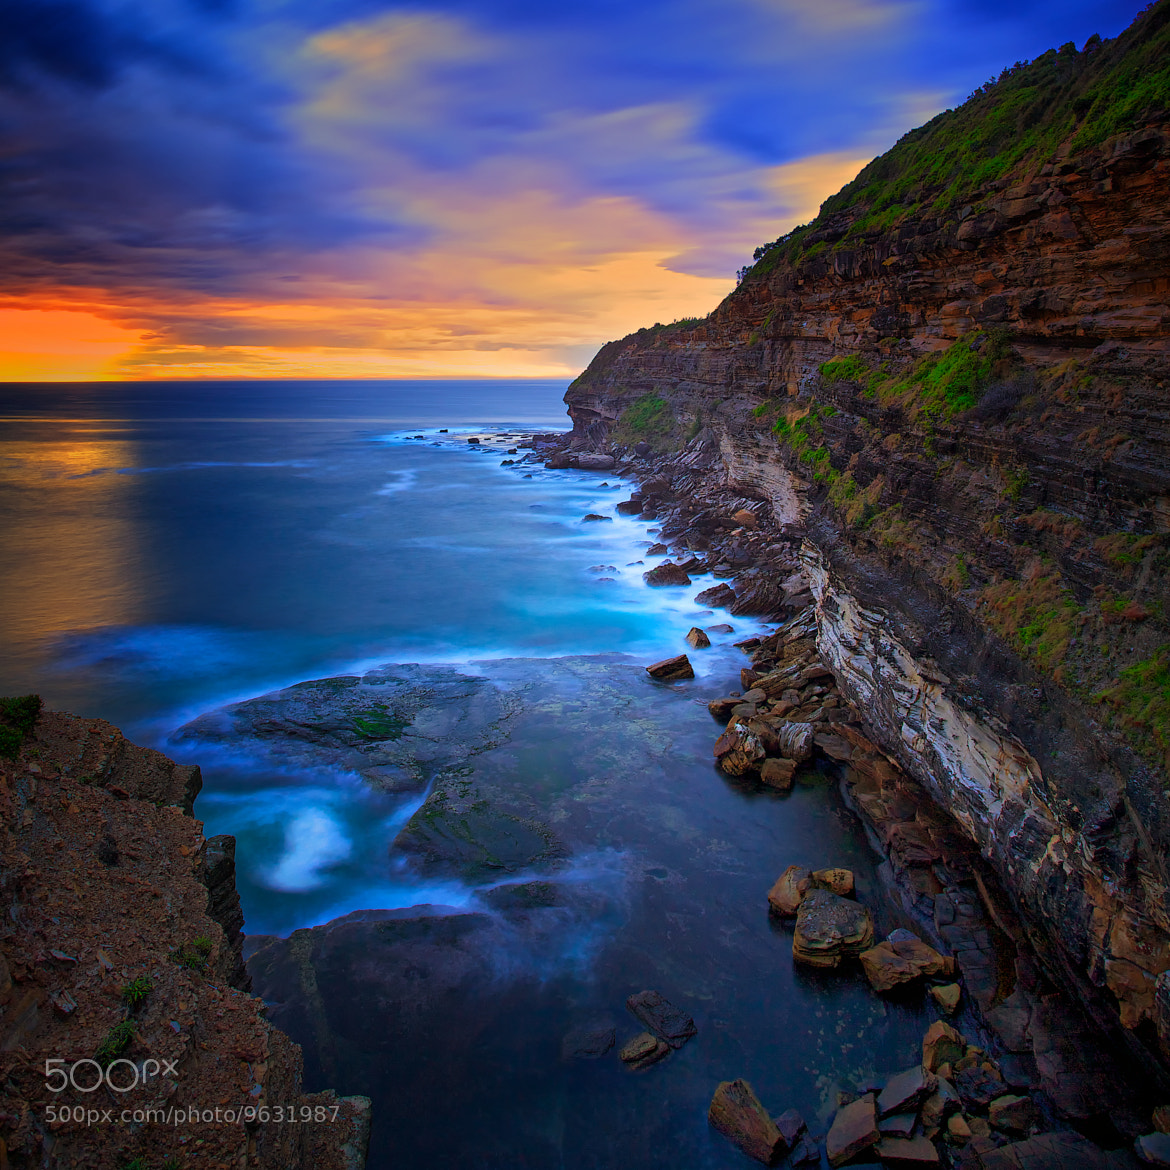 Photograph Warriewood Blues by Noval Nugraha on 500px